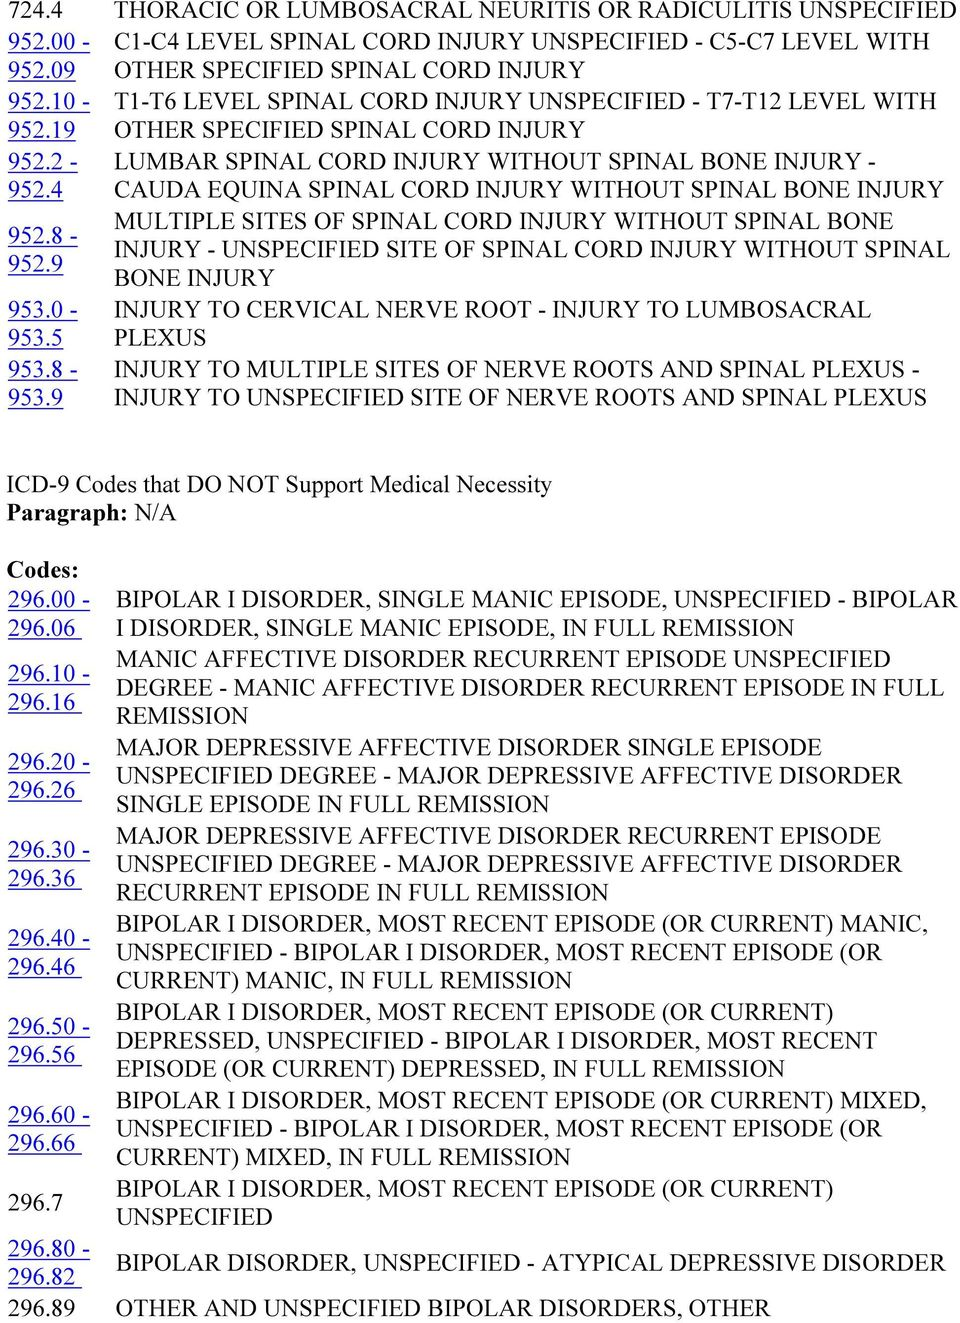 4 CAUDA EQUINA SPINAL CORD INJURY WITHOUT SPINAL BONE INJURY MULTIPLE SITES OF SPINAL CORD INJURY WITHOUT SPINAL BONE 952.8 - INJURY - UNSPECIFIED SITE OF SPINAL CORD INJURY WITHOUT SPINAL 952.